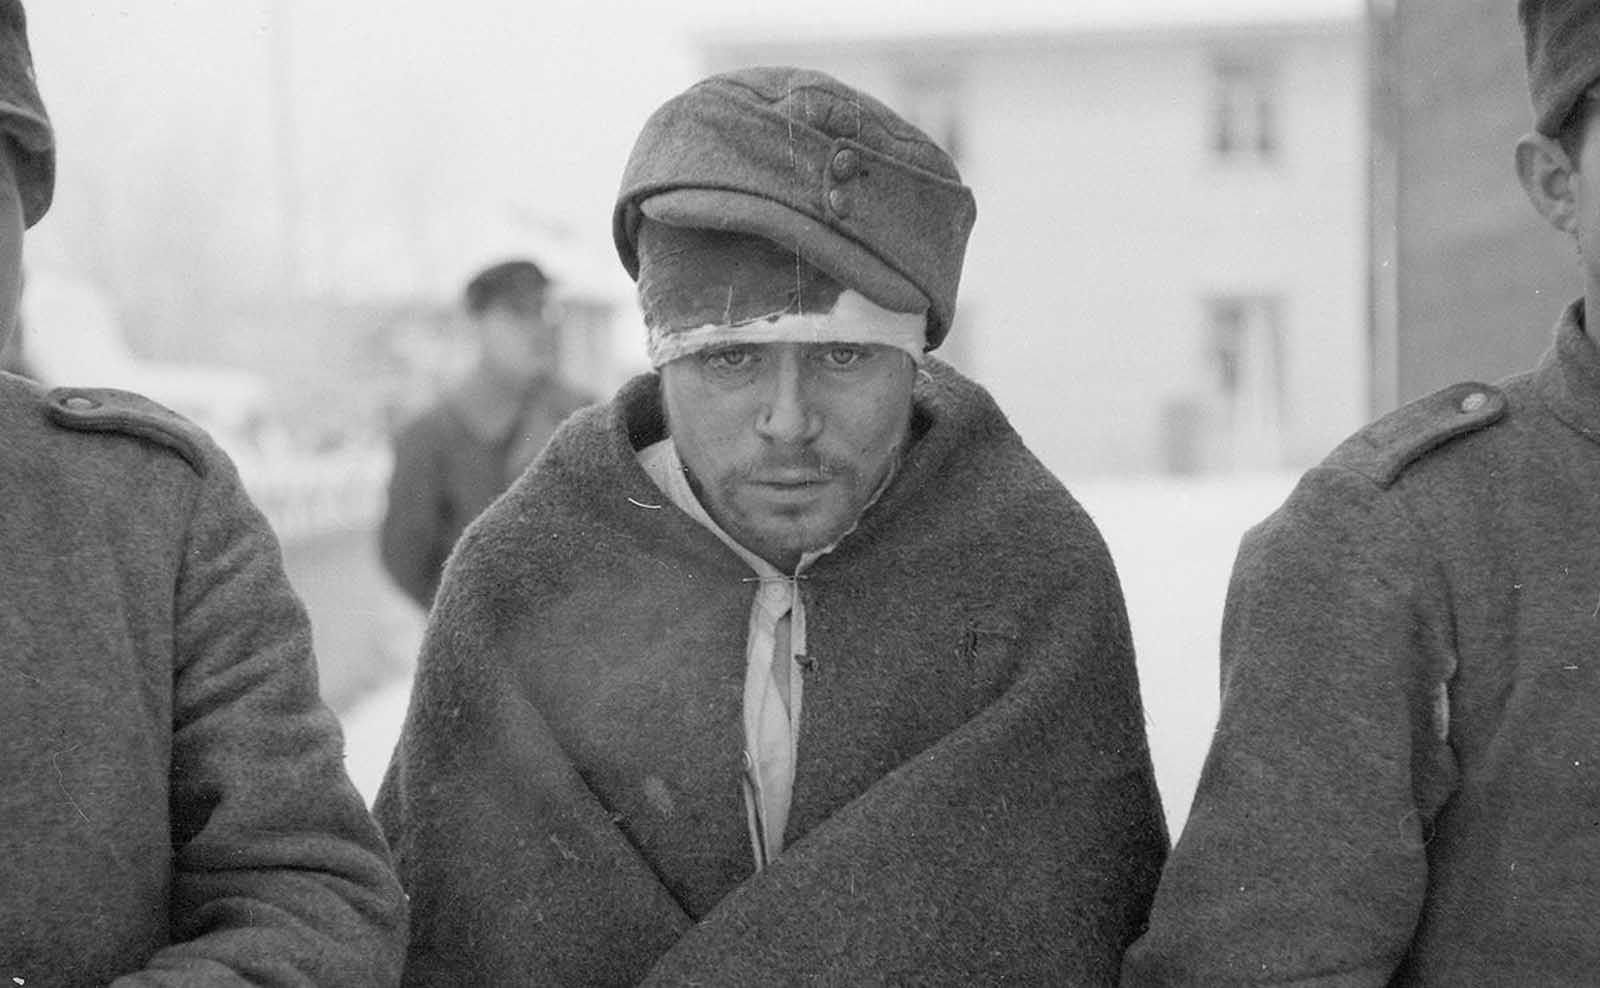 Russian prisoners of war.